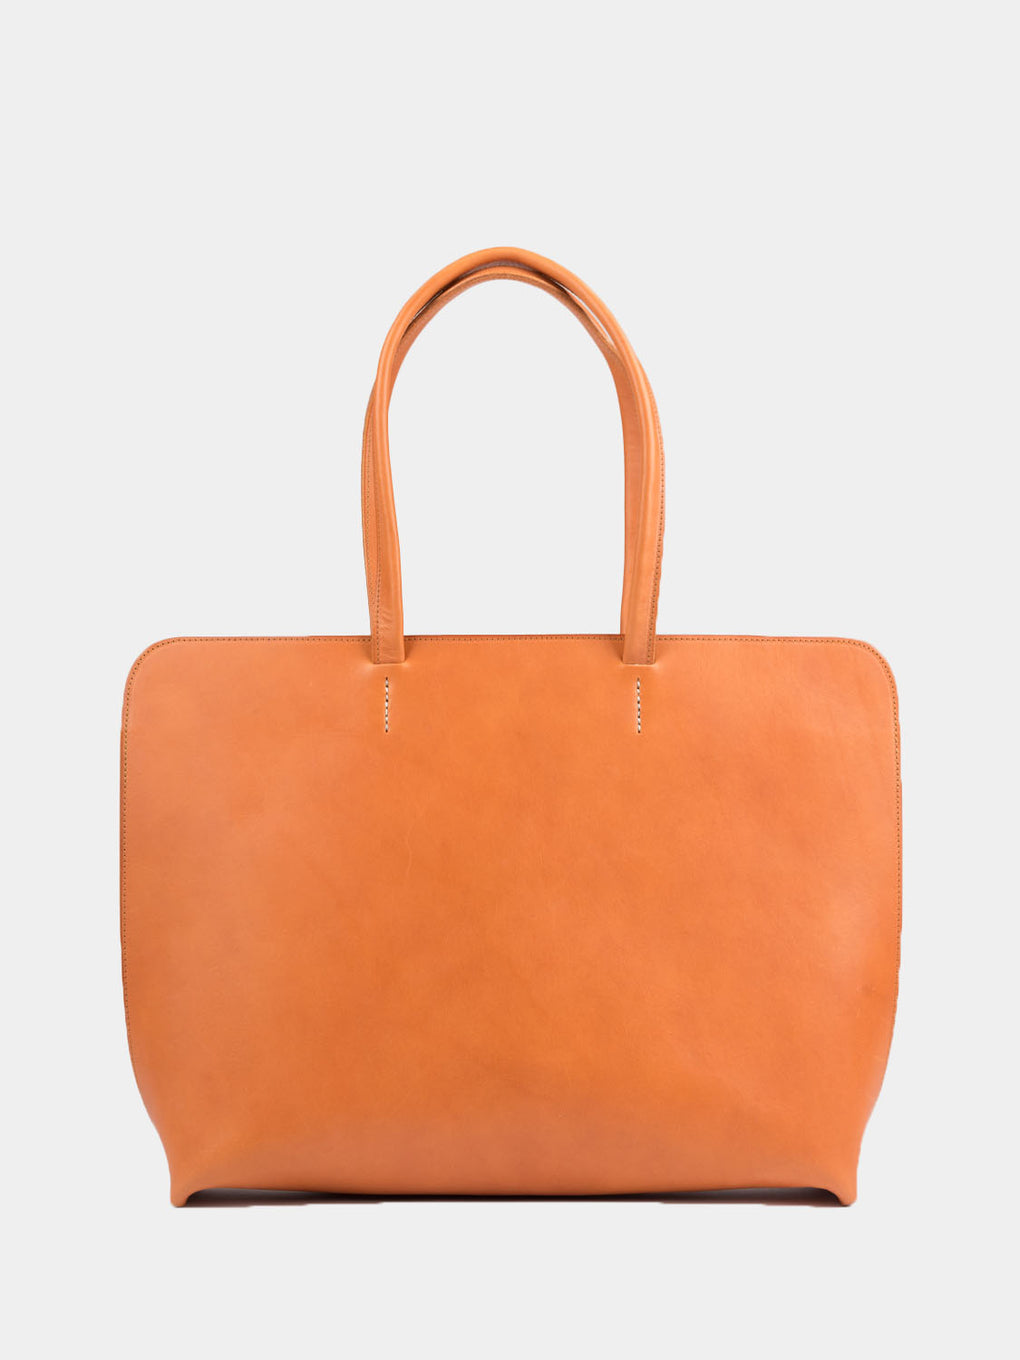 minimalist style, womens bag, tote bag, english bridal leather, vegetable tanned, Sara Barner